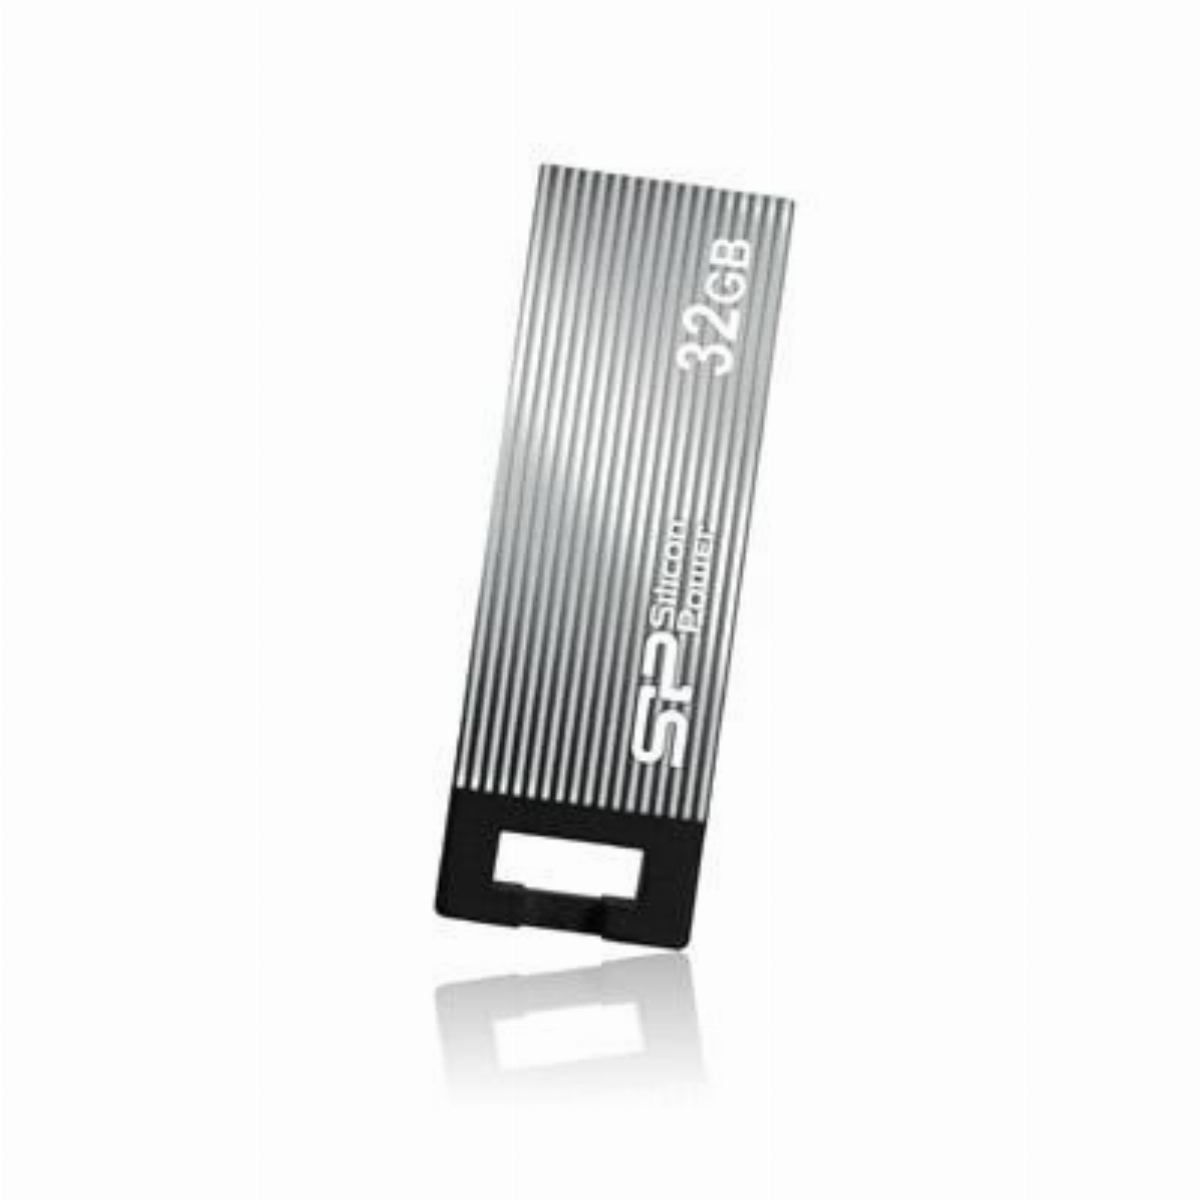 USB памет SILICON POWER Touch 835, 32GB, Сива